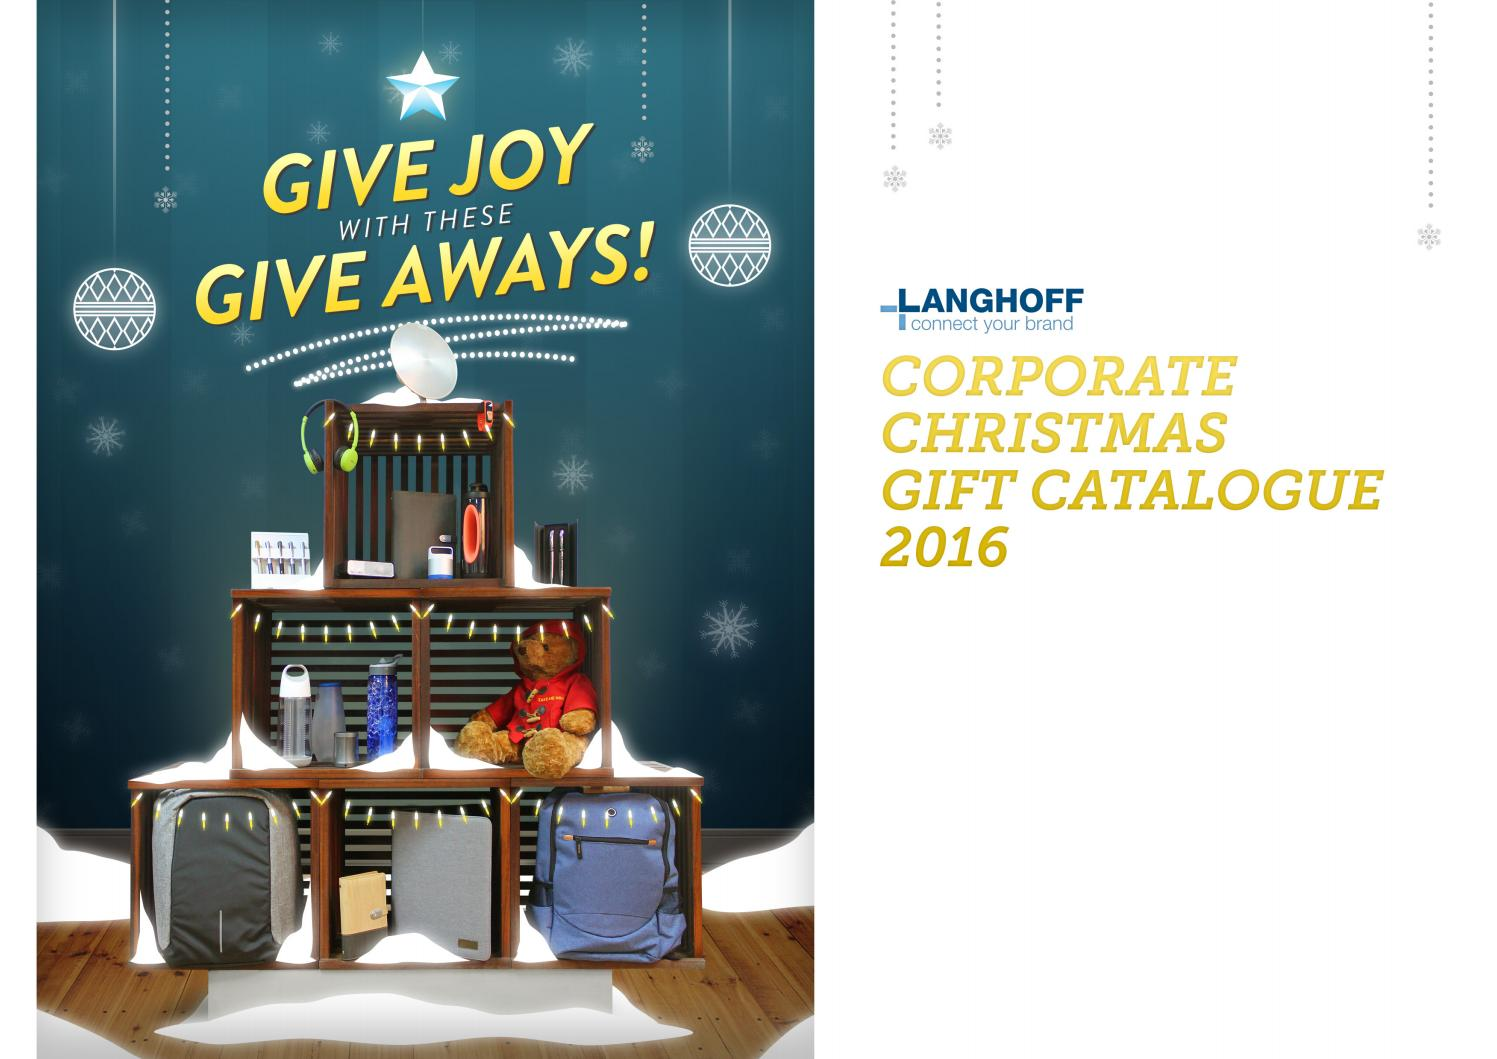 Langhoff Corporate Christmas Gift Catalogue 2016 by Langhoff ...